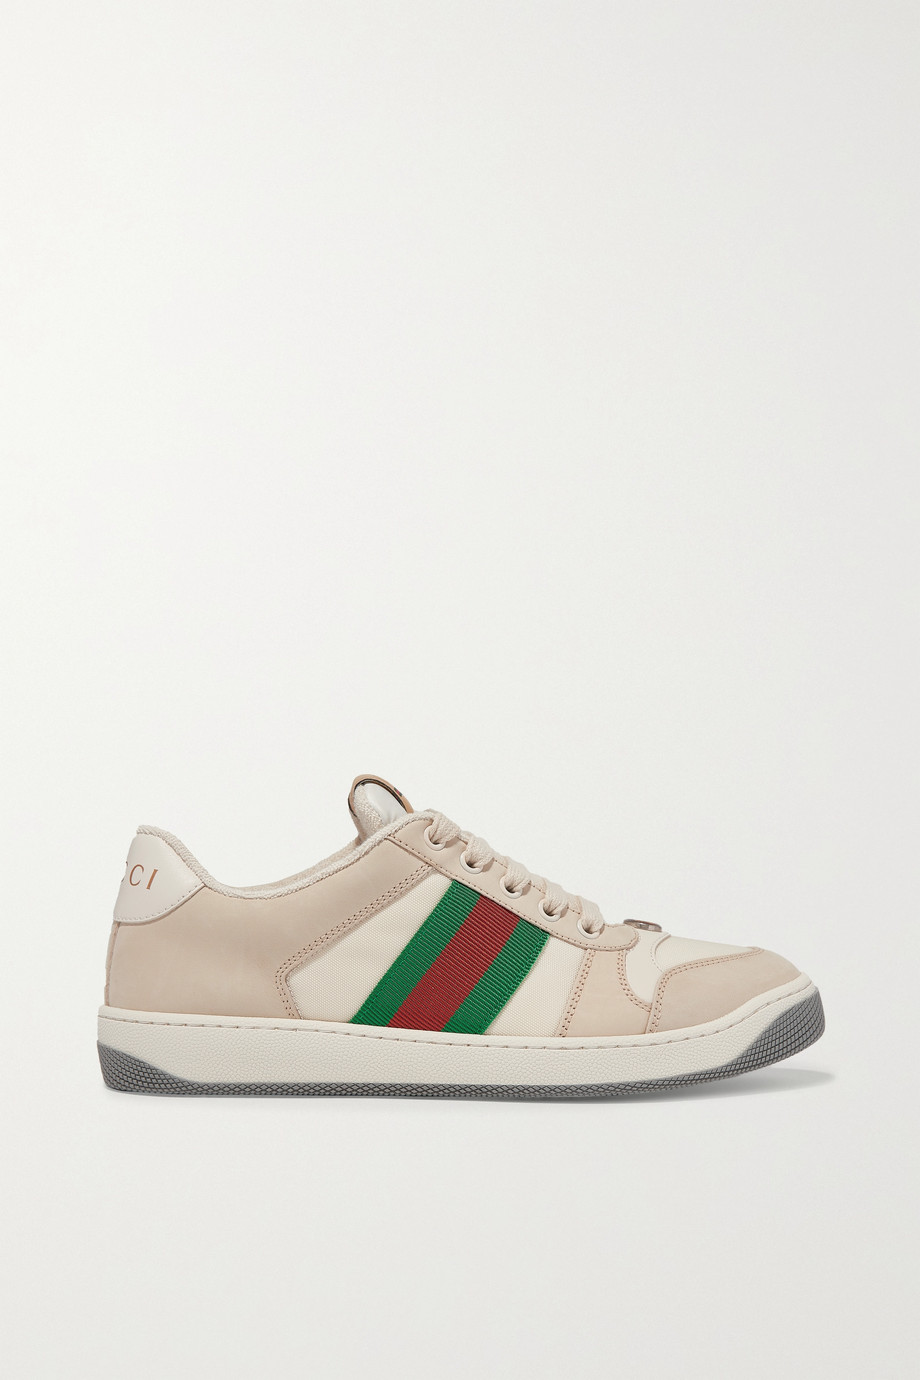 Gucci Screener canvas-trimmed leather sneakers